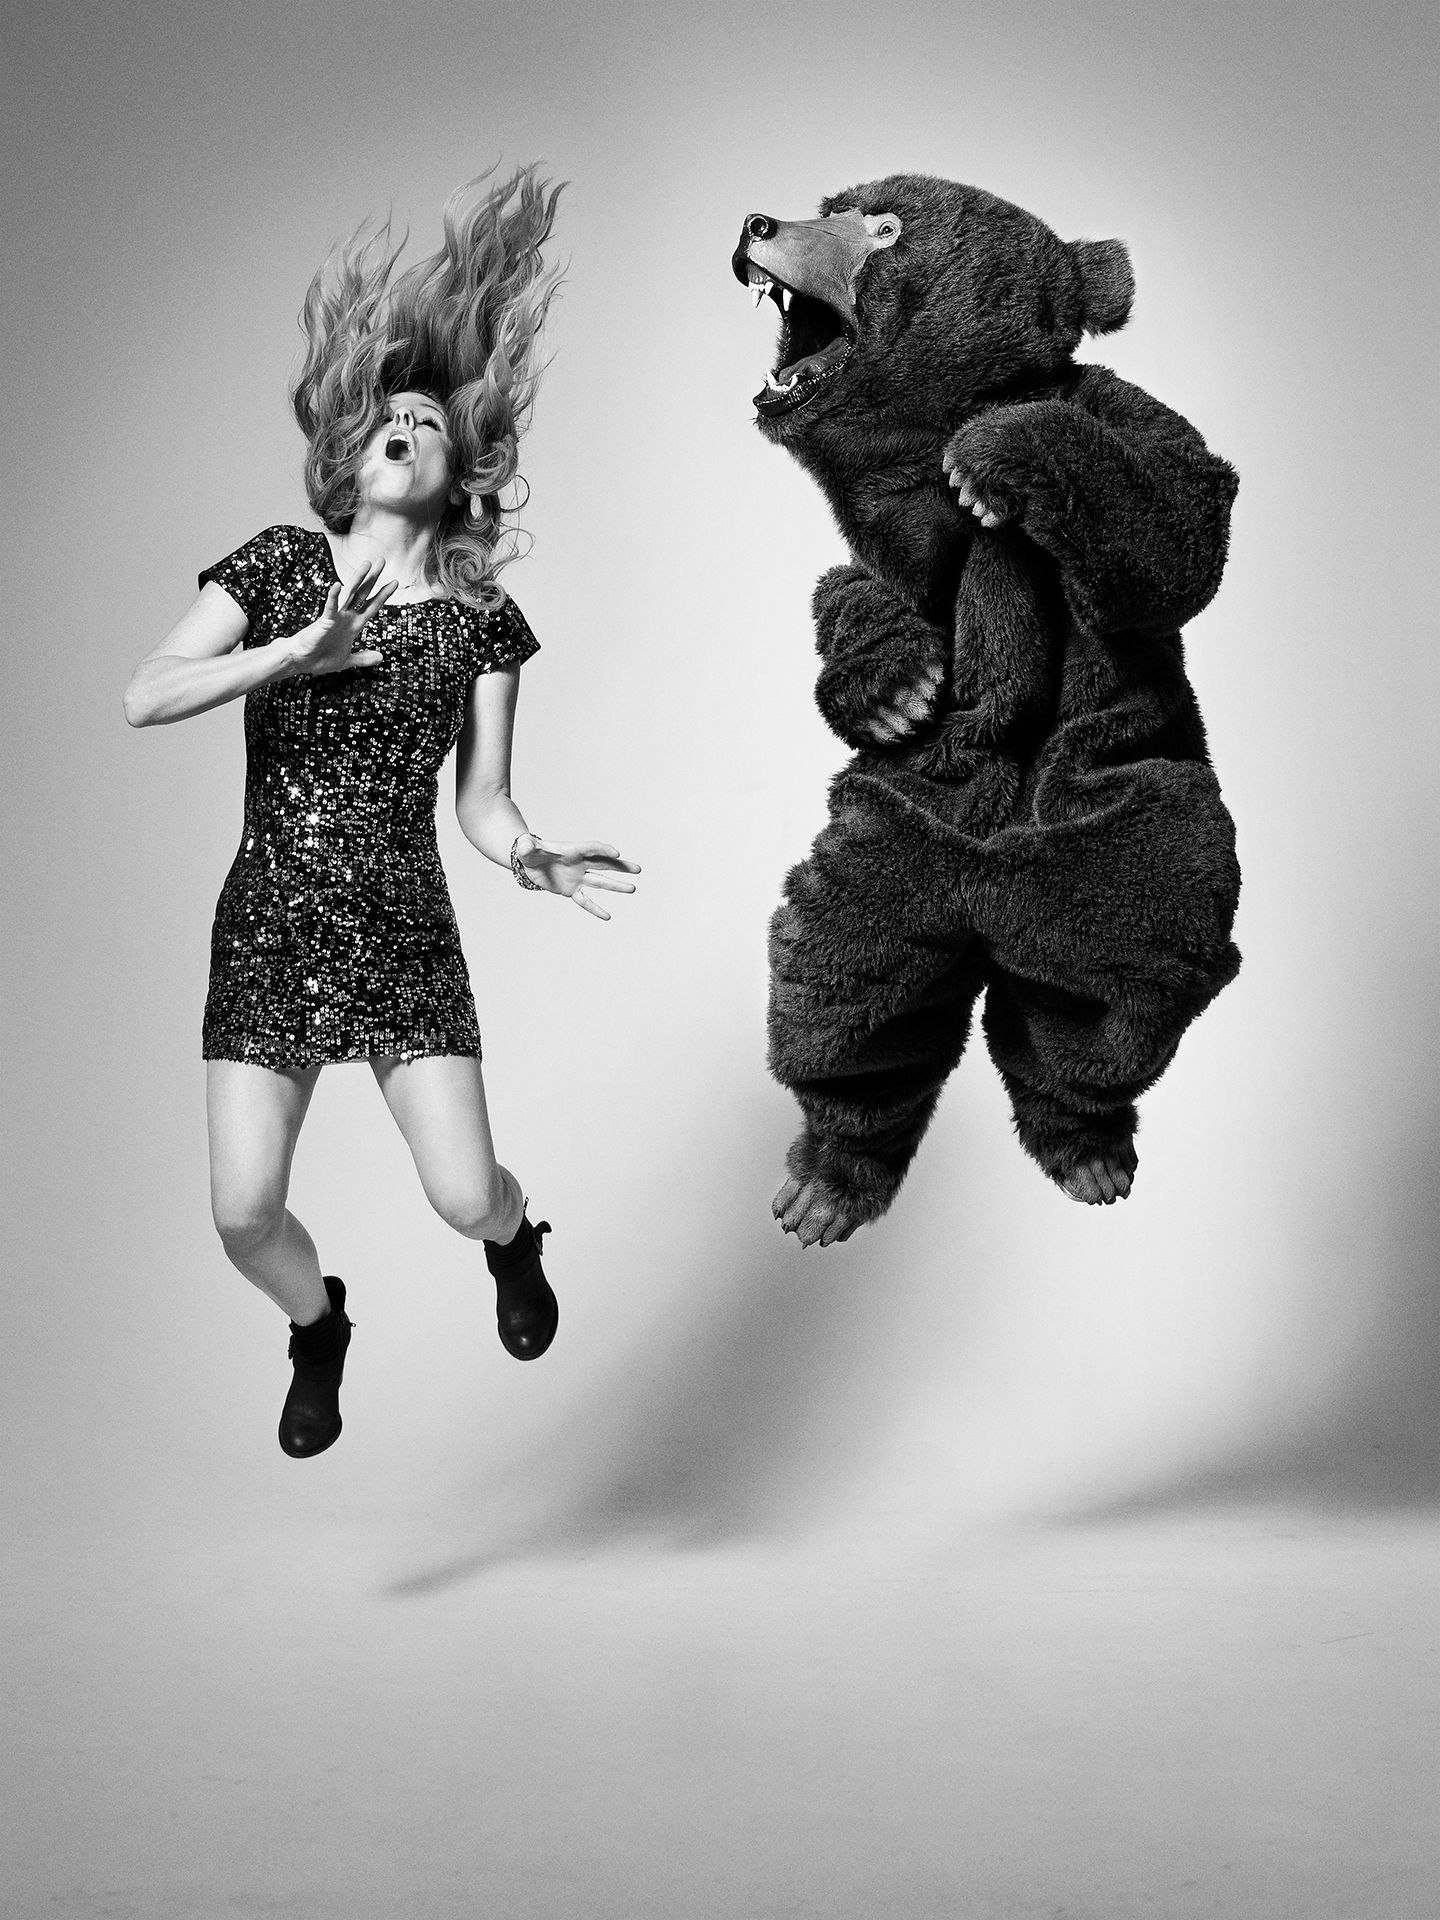 France D'Amour photographed jumping in the air by Jocelyn Michel for JUMP personal series